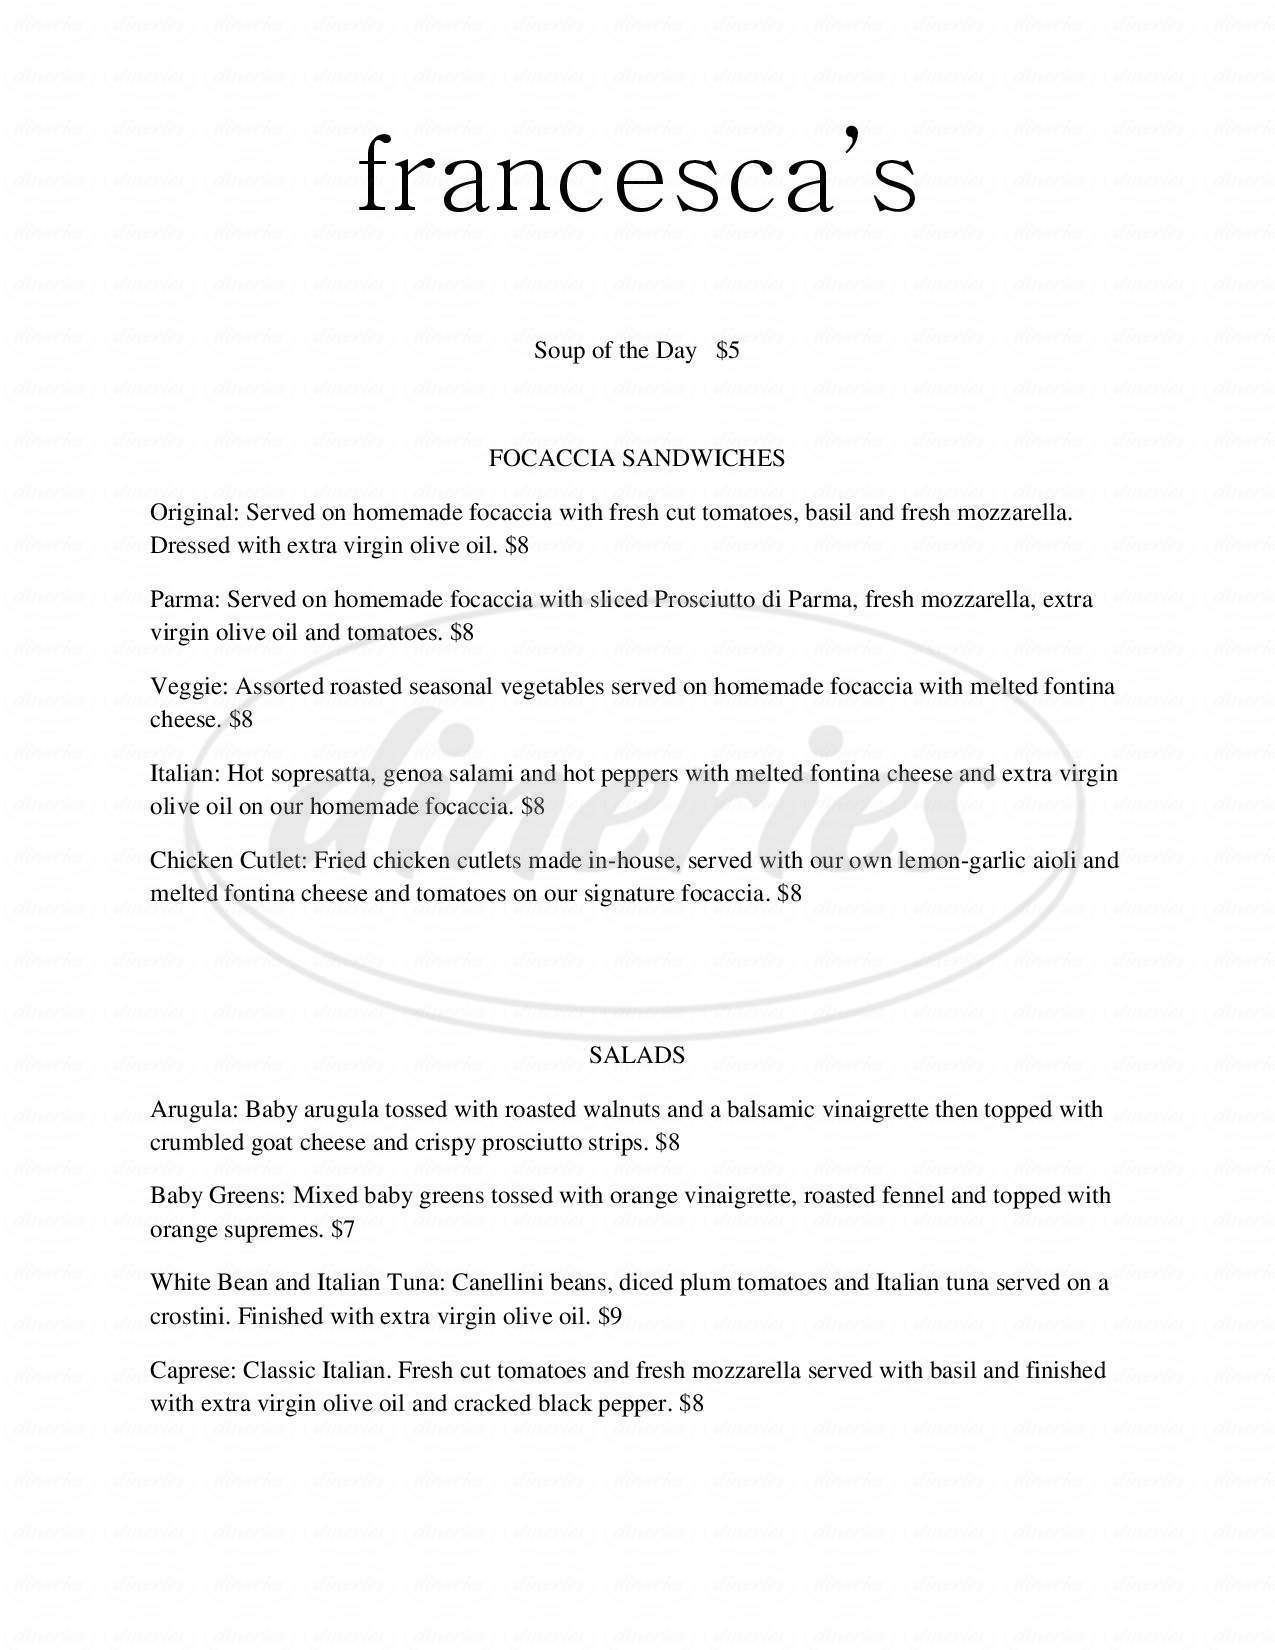 menu for Francesca's Wine Bar and Bistro